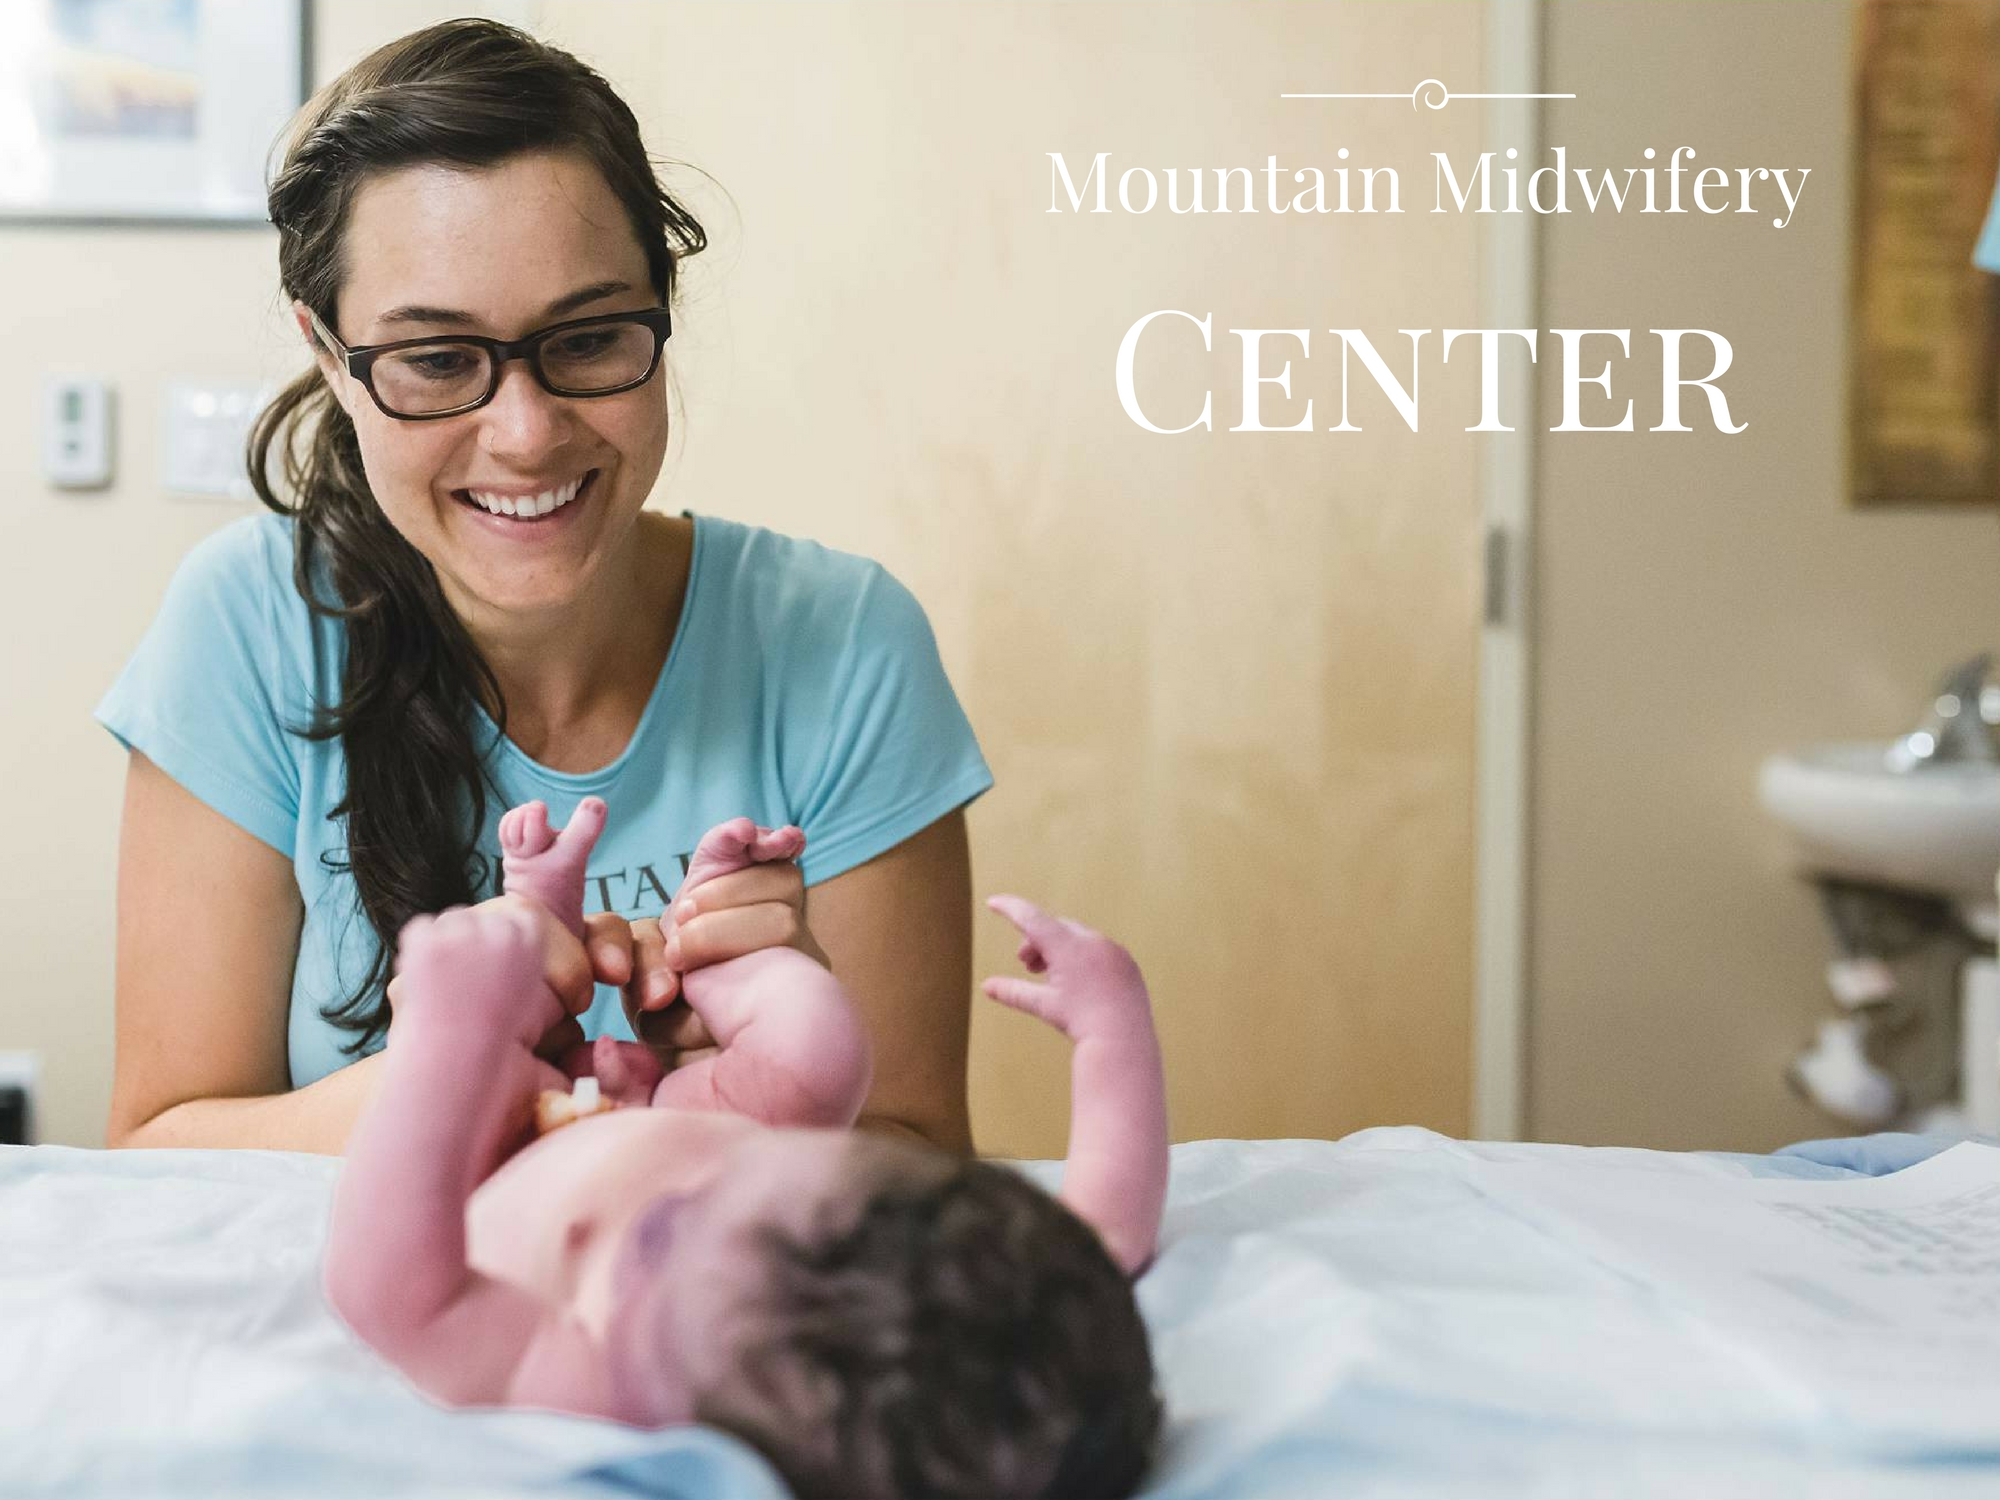 Aubre Thompkins Midwife at Mountain Midwifery Center